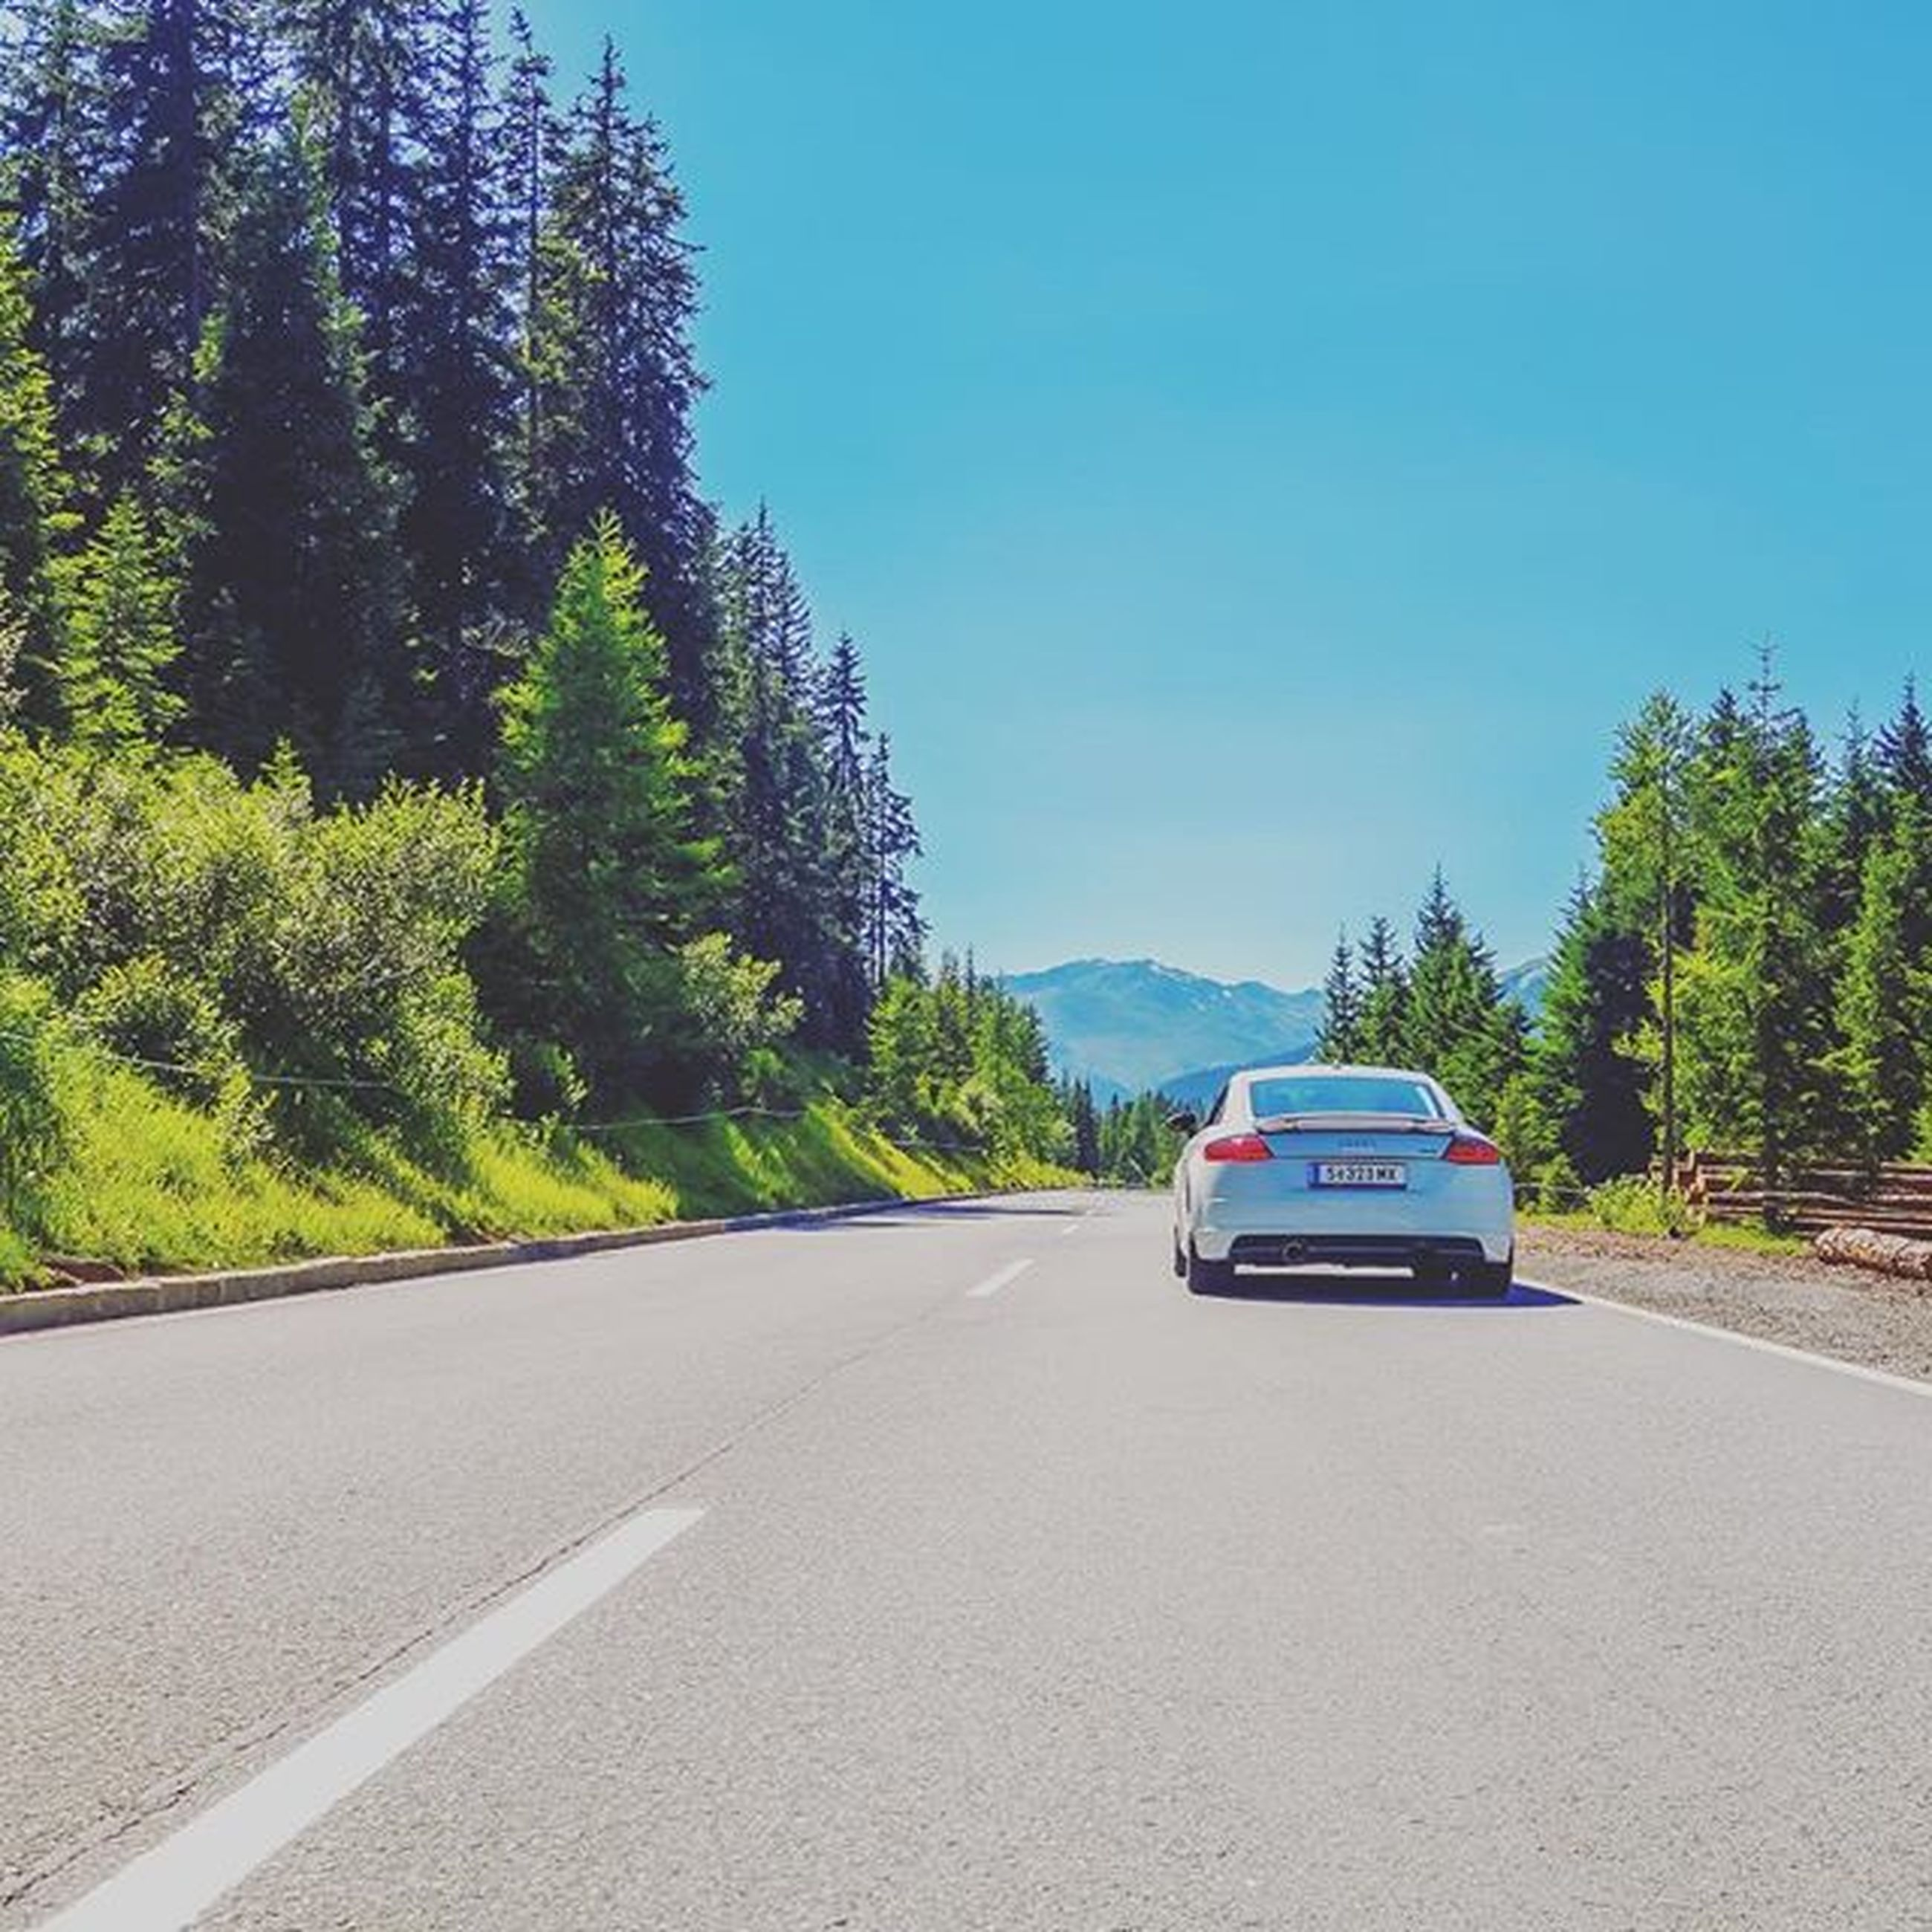 transportation, road, clear sky, car, land vehicle, tree, mode of transport, road marking, the way forward, street, blue, copy space, country road, on the move, diminishing perspective, asphalt, sky, travel, day, sunlight